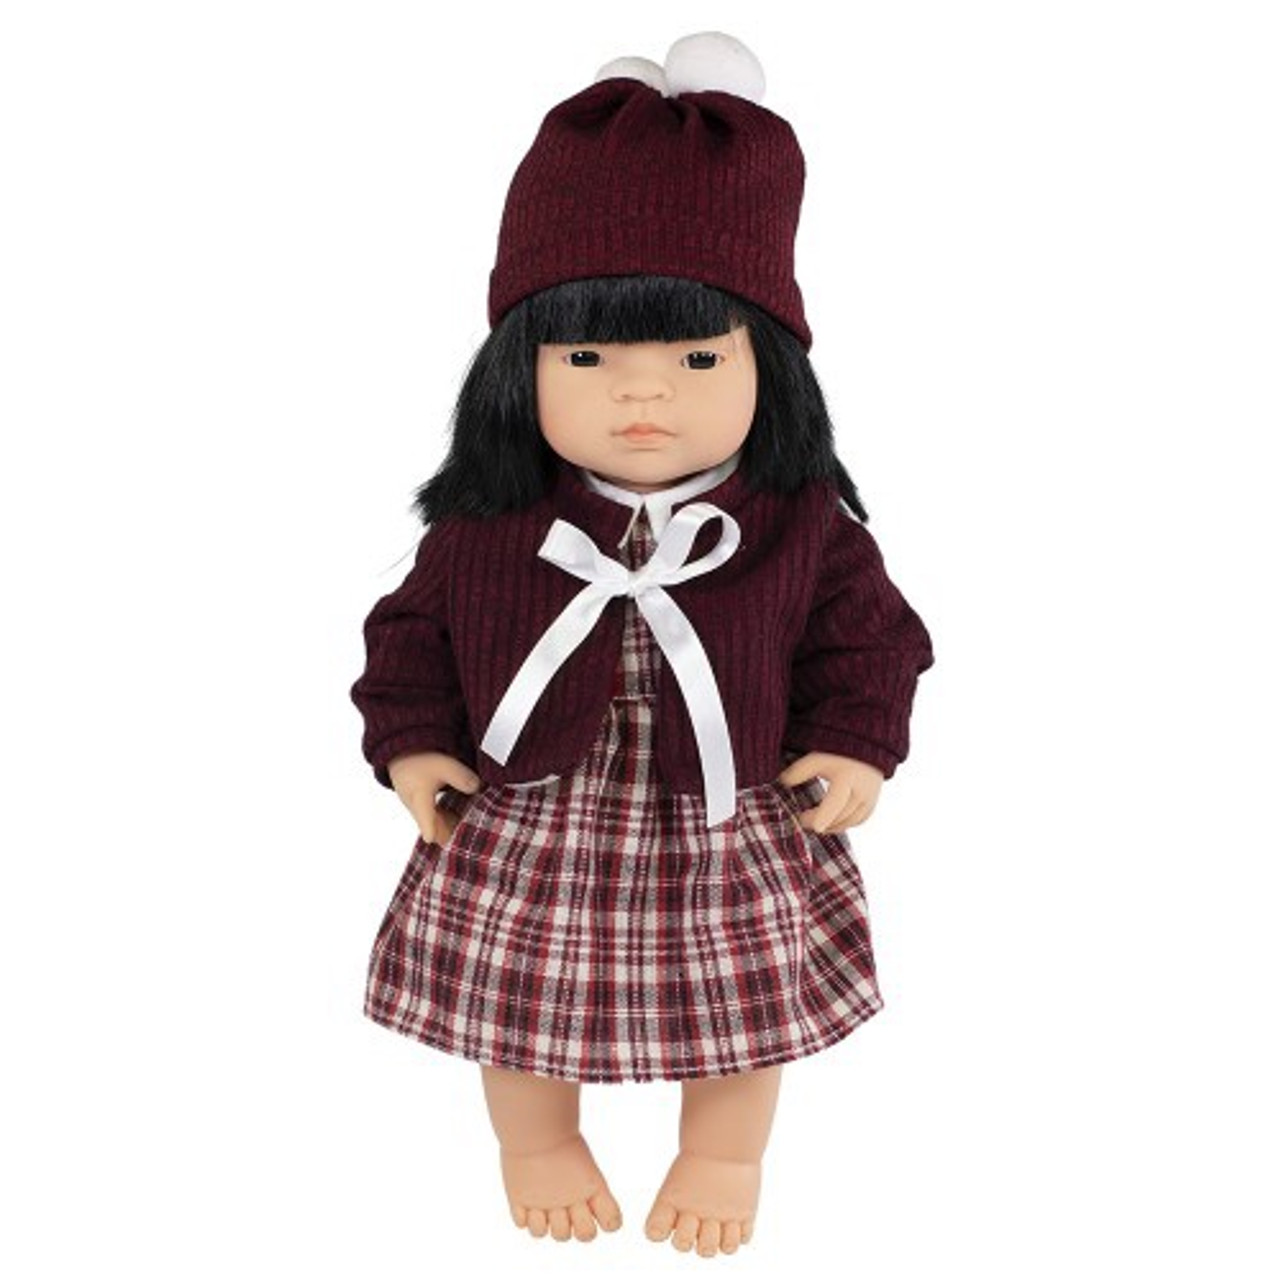 Miniland Doll Anatomically Correct Baby & Outfit Boxed 38 cm (UNDRESSED) - Asian Girl | Baby Barn Discounts